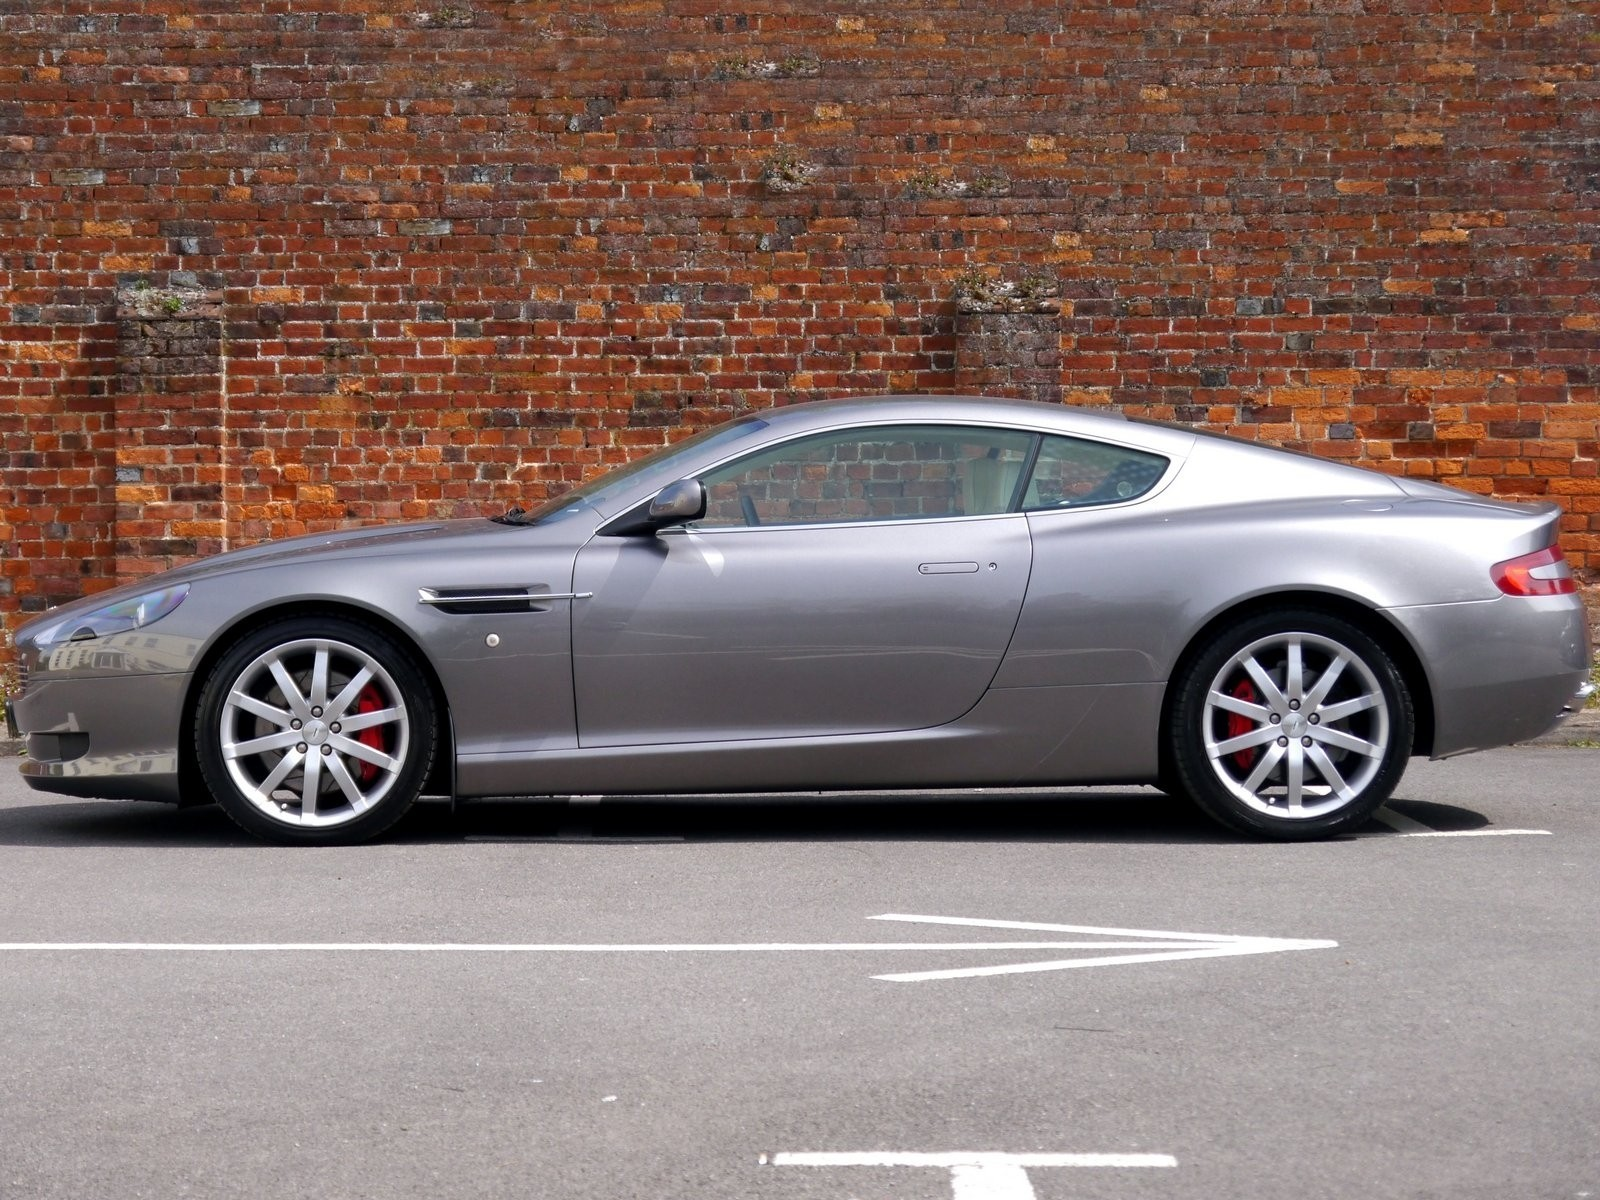 Aston Martin Db9 for Sale Inspirational aston Martin Db9 V12 Coupe touchtronic Linn Audio Sat Nav for Sale